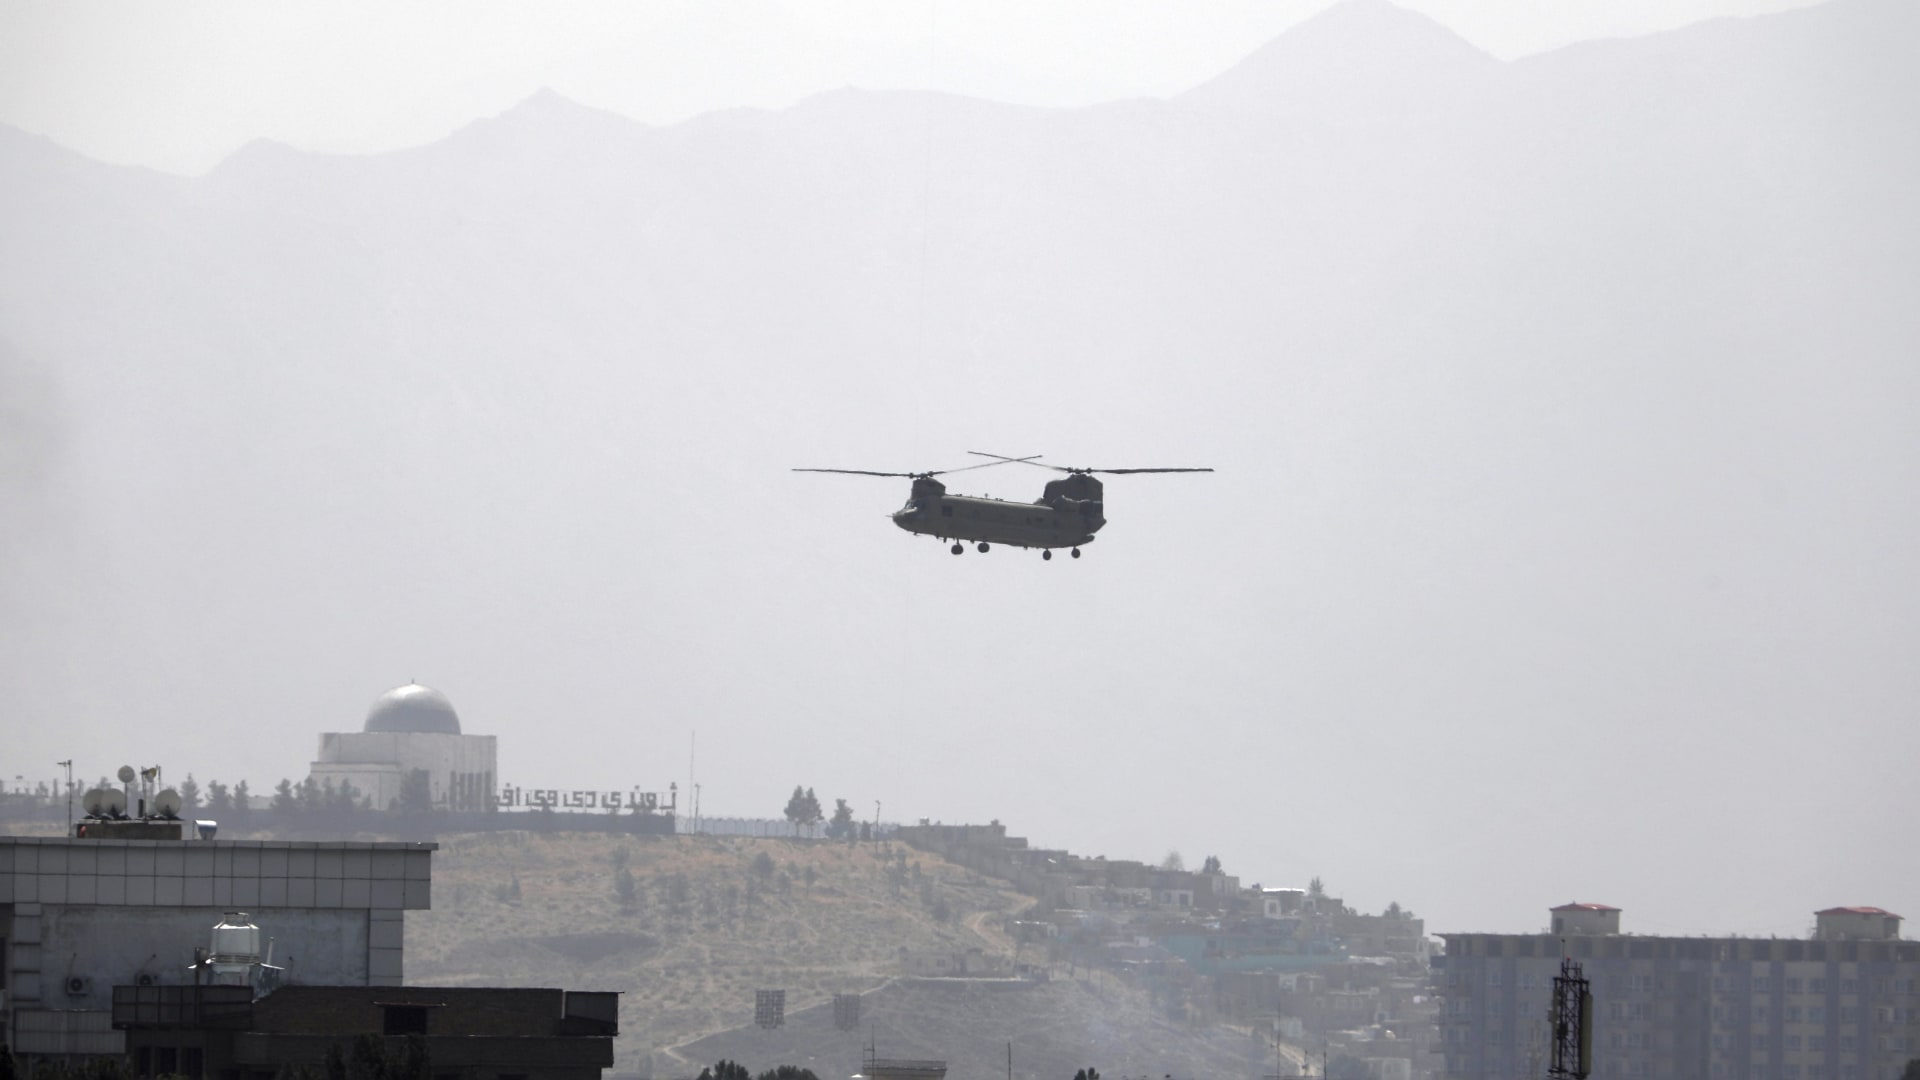 A U.S. Chinook helicopter flies over the U.S. Embassy in Kabul, Afghanistan, on August 15, 2021.